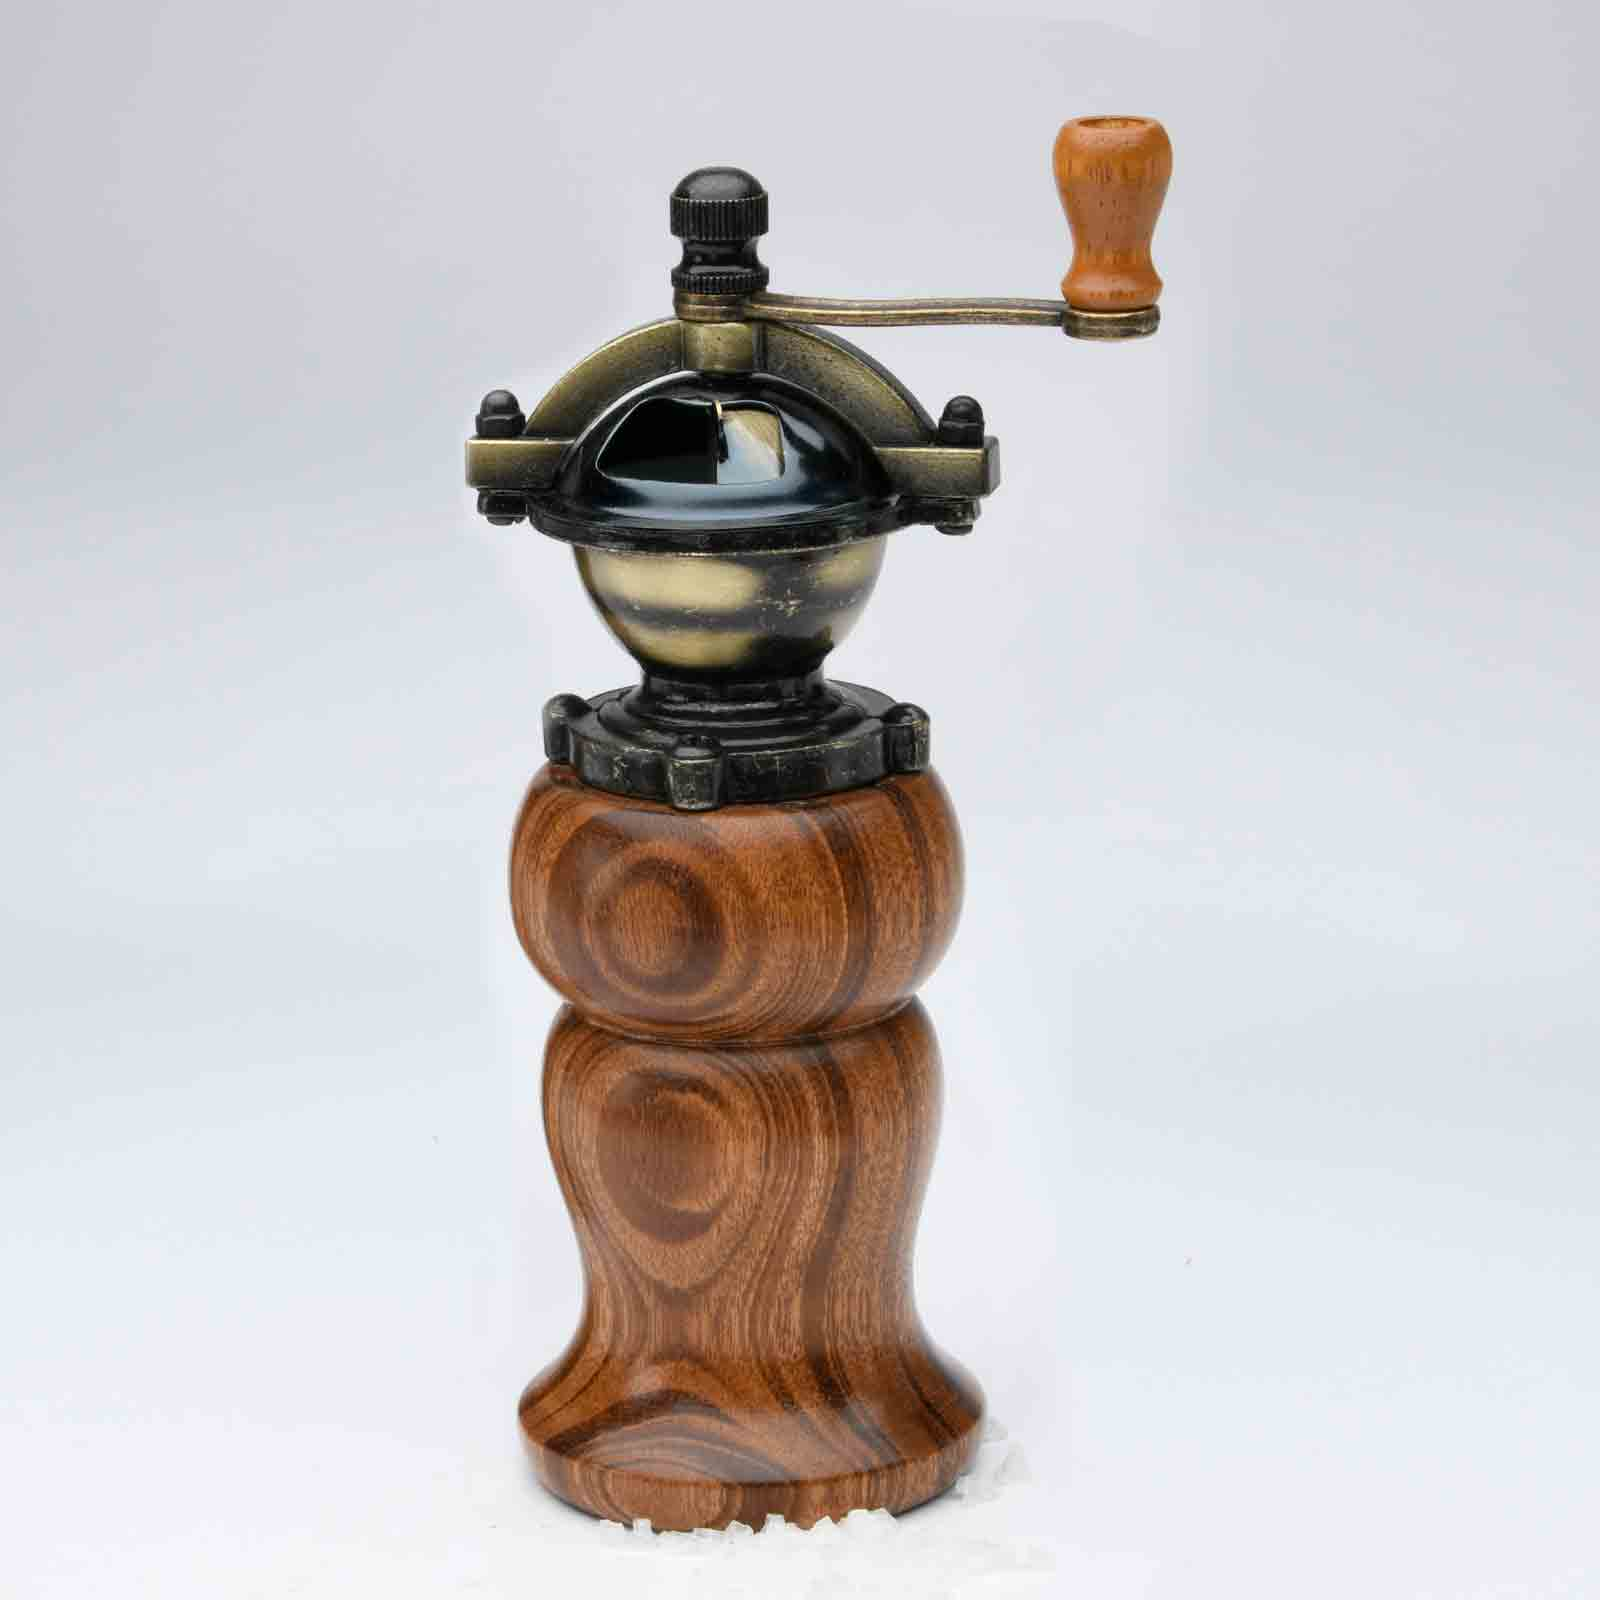 Ez Assemble Vintage Style Salt And Pepper Mill Mechanism In Antique Brass At Penn State Industries